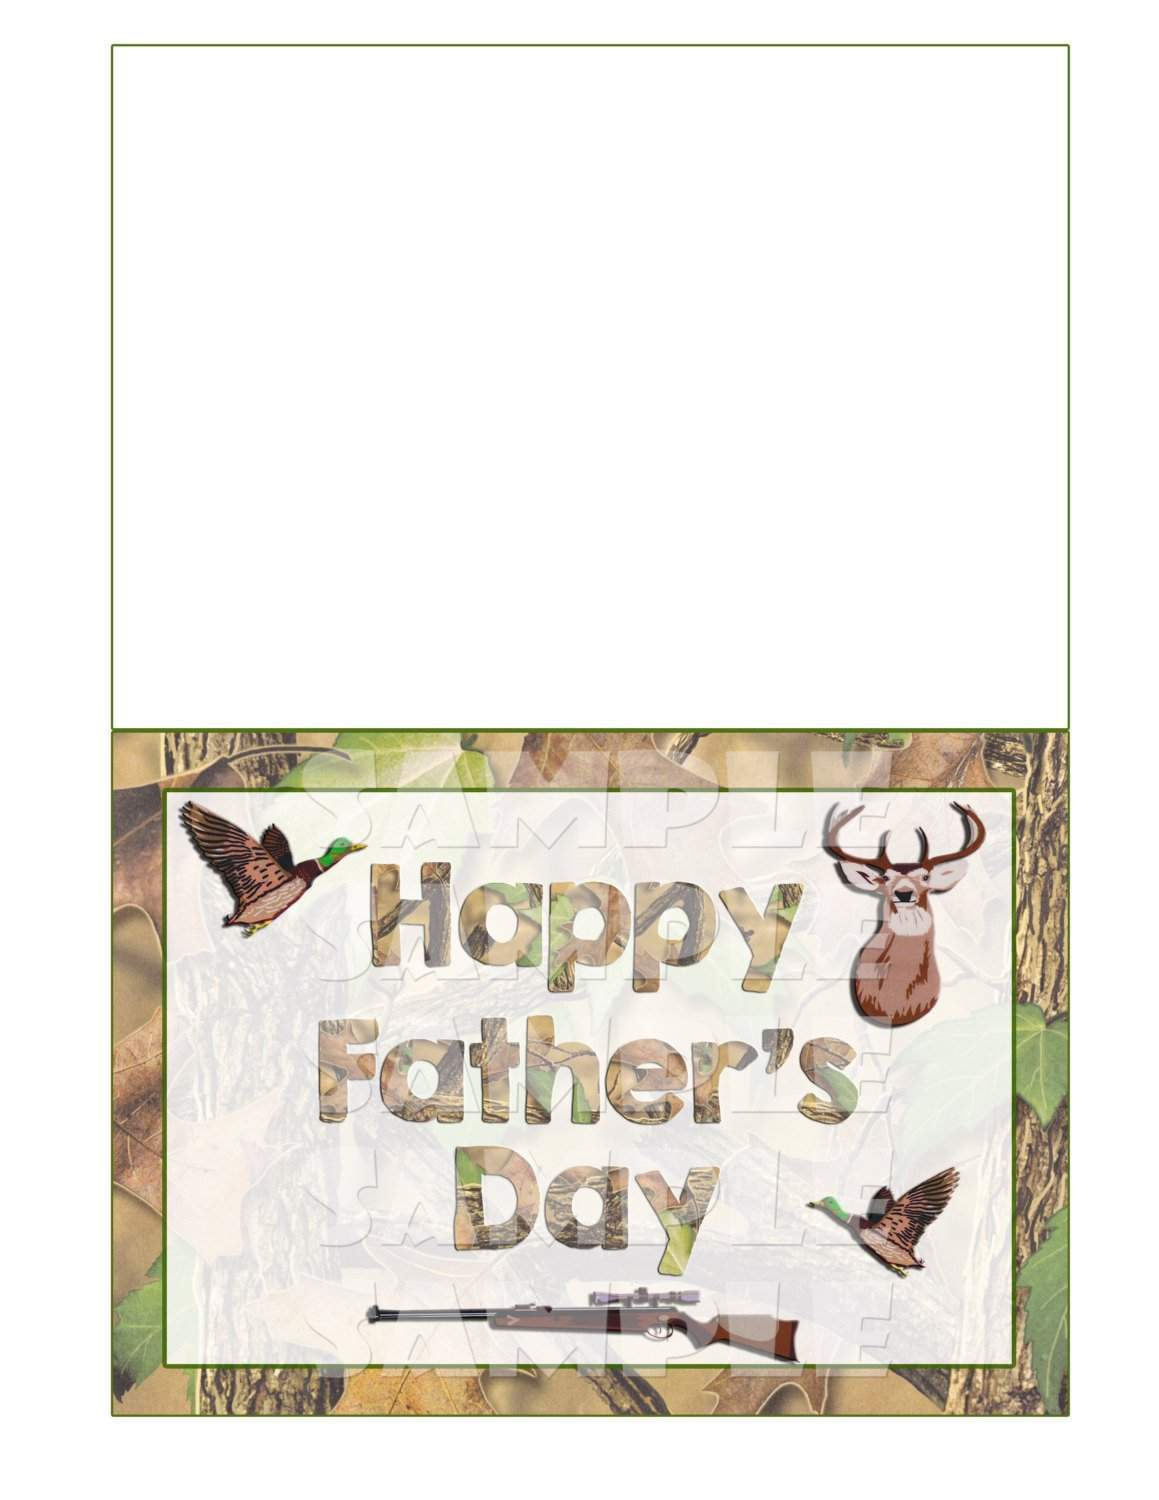 picture about Fathers Day Card Printable titled Camo On the lookout Themed Fathers Working day Card